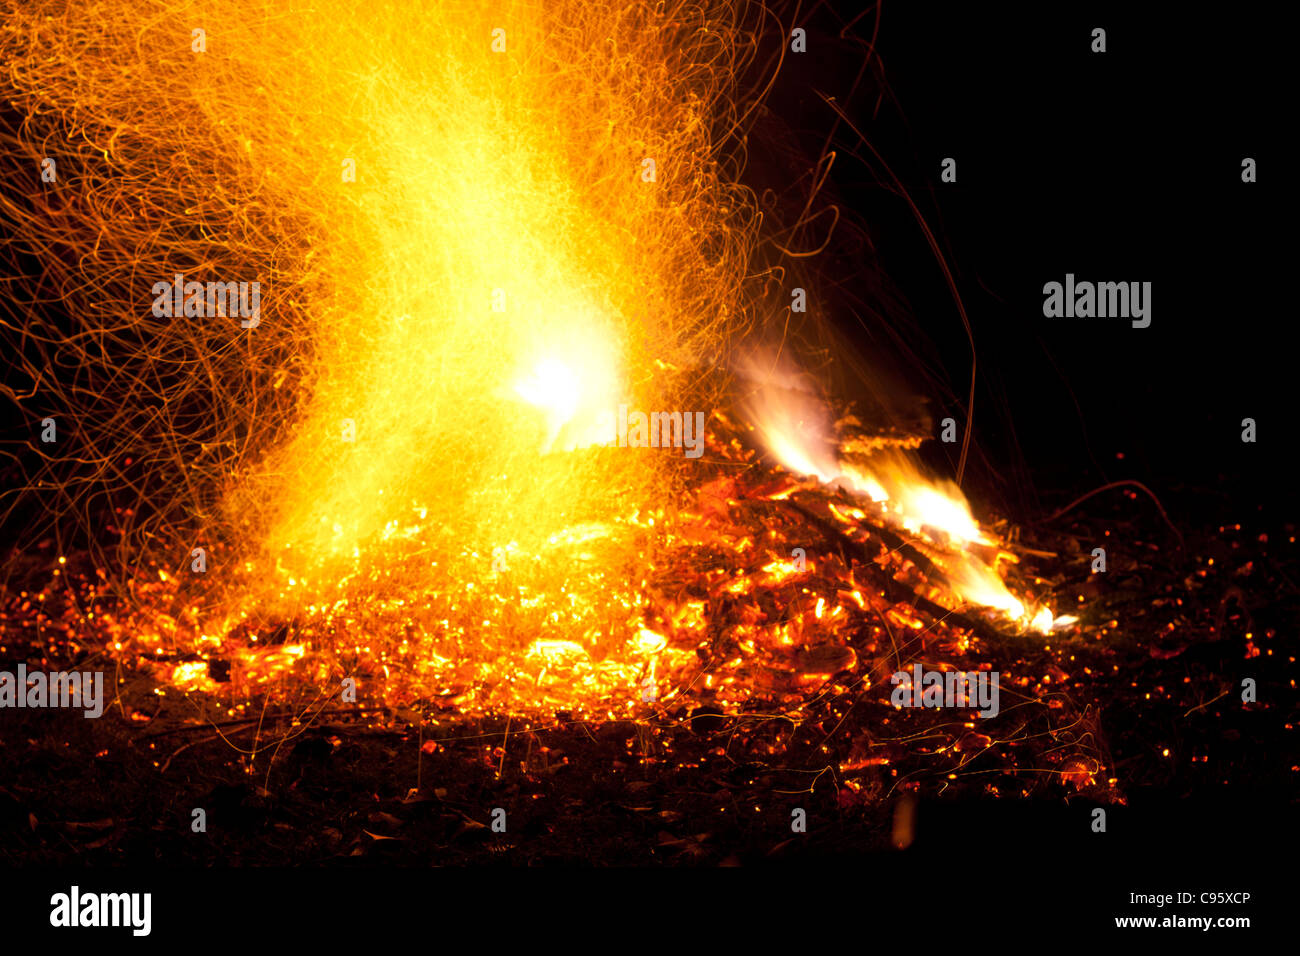 Fire With Flames And Sparks Intense Orange Yellow Glow